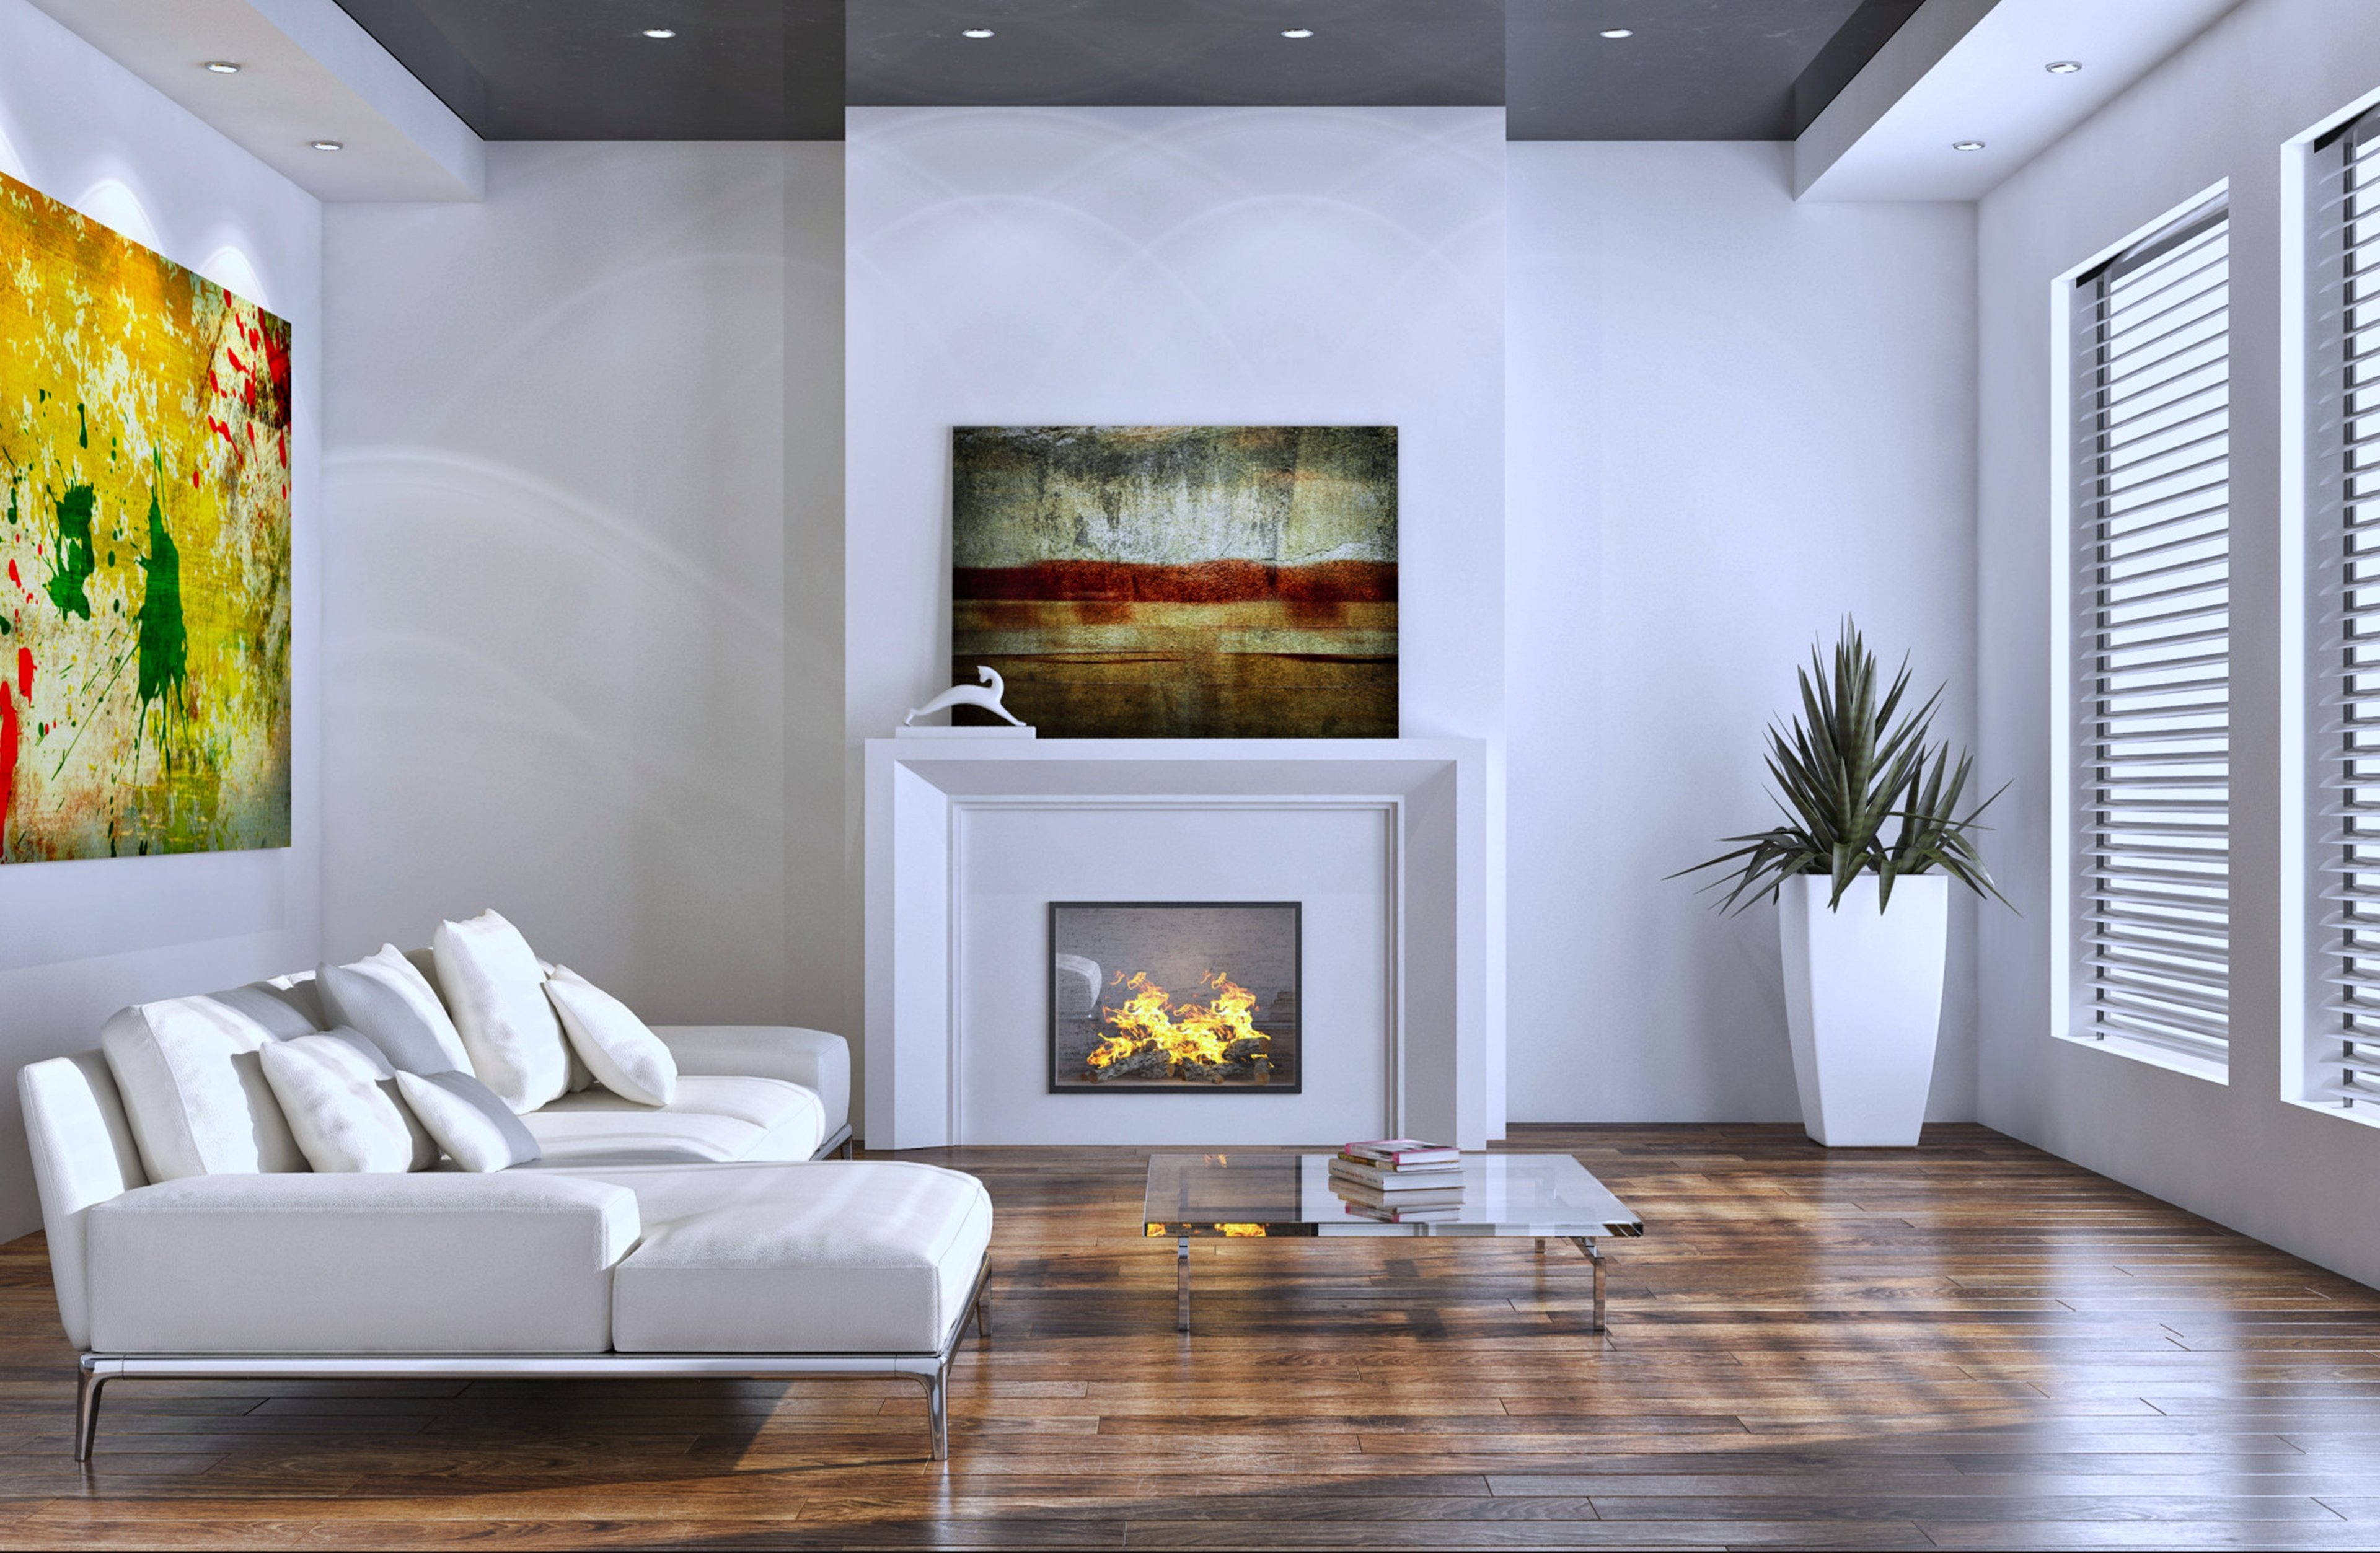 Beauty design happy house interior living room luxury - Interior of living room pictures ...